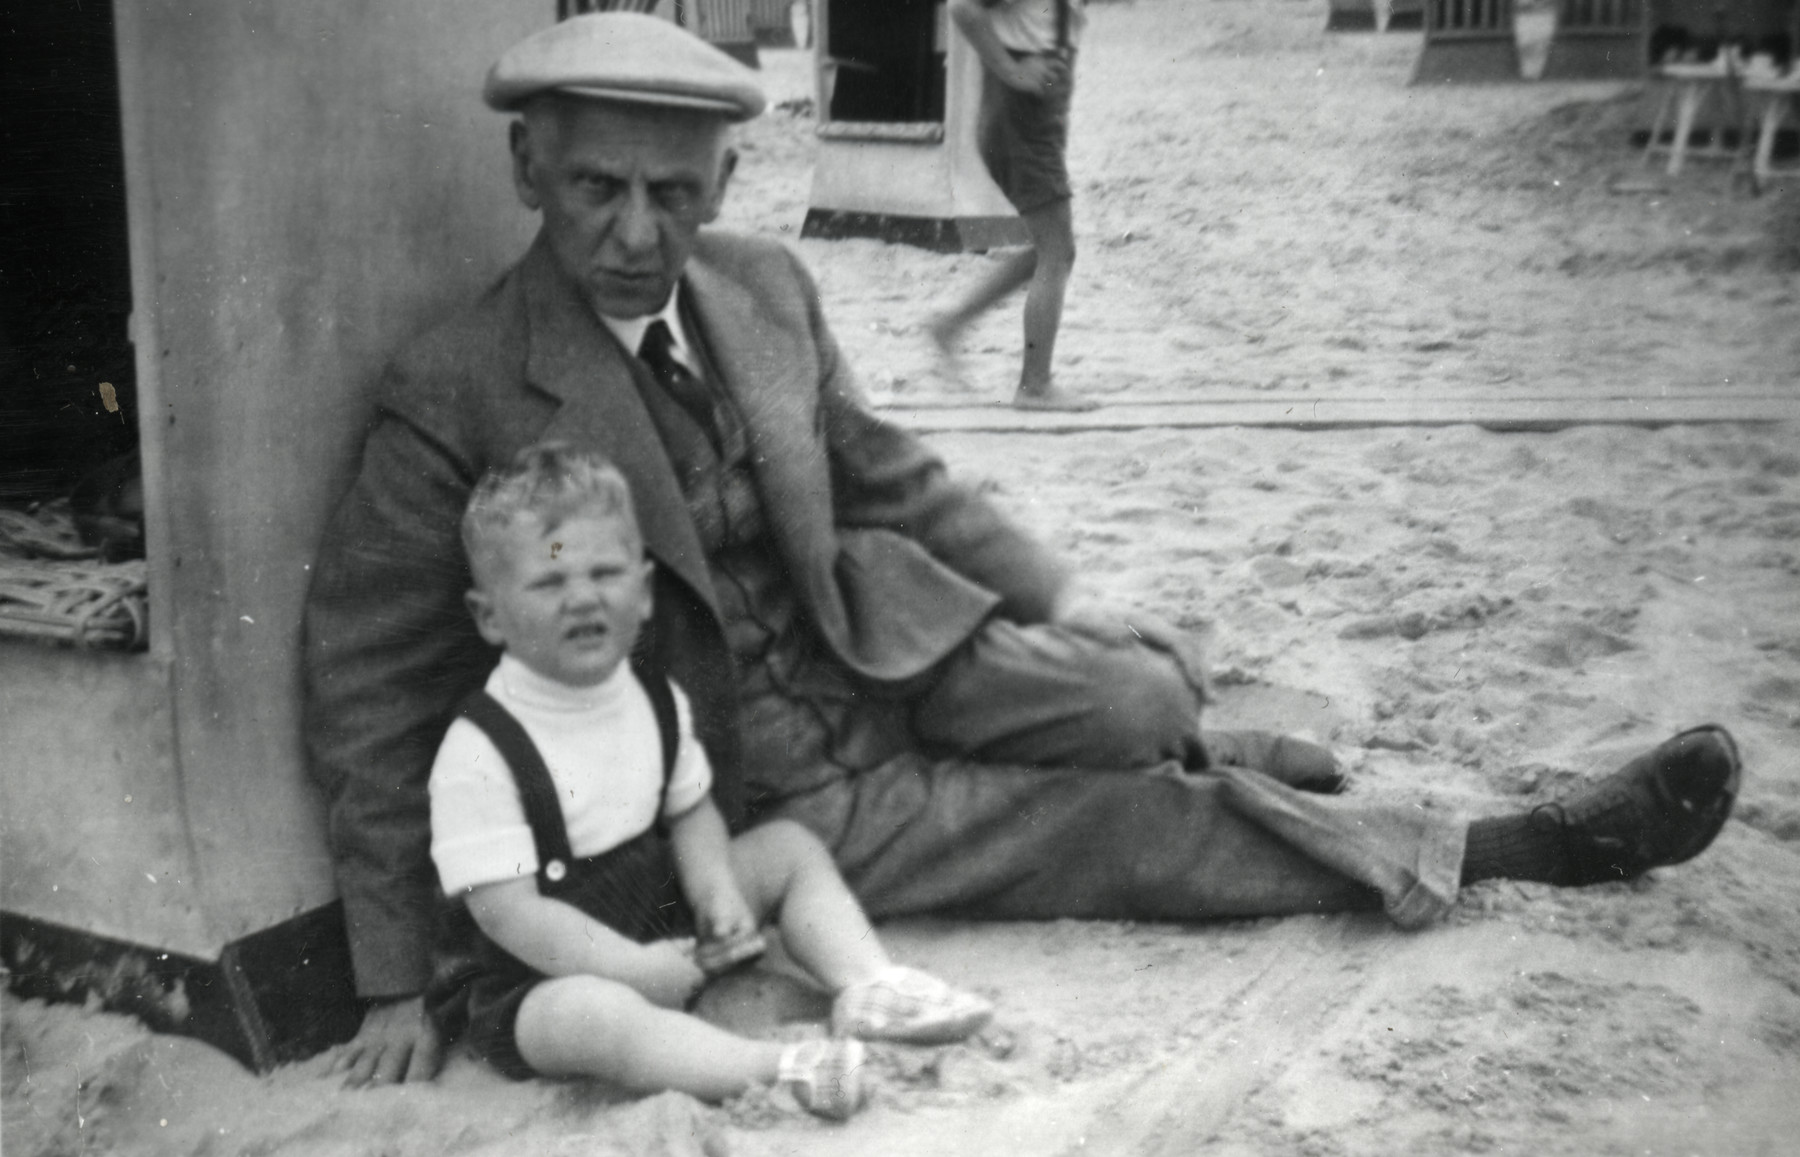 Hanan Kisch sits next to a beach cabana with his grandfather, Hartog Kisch.